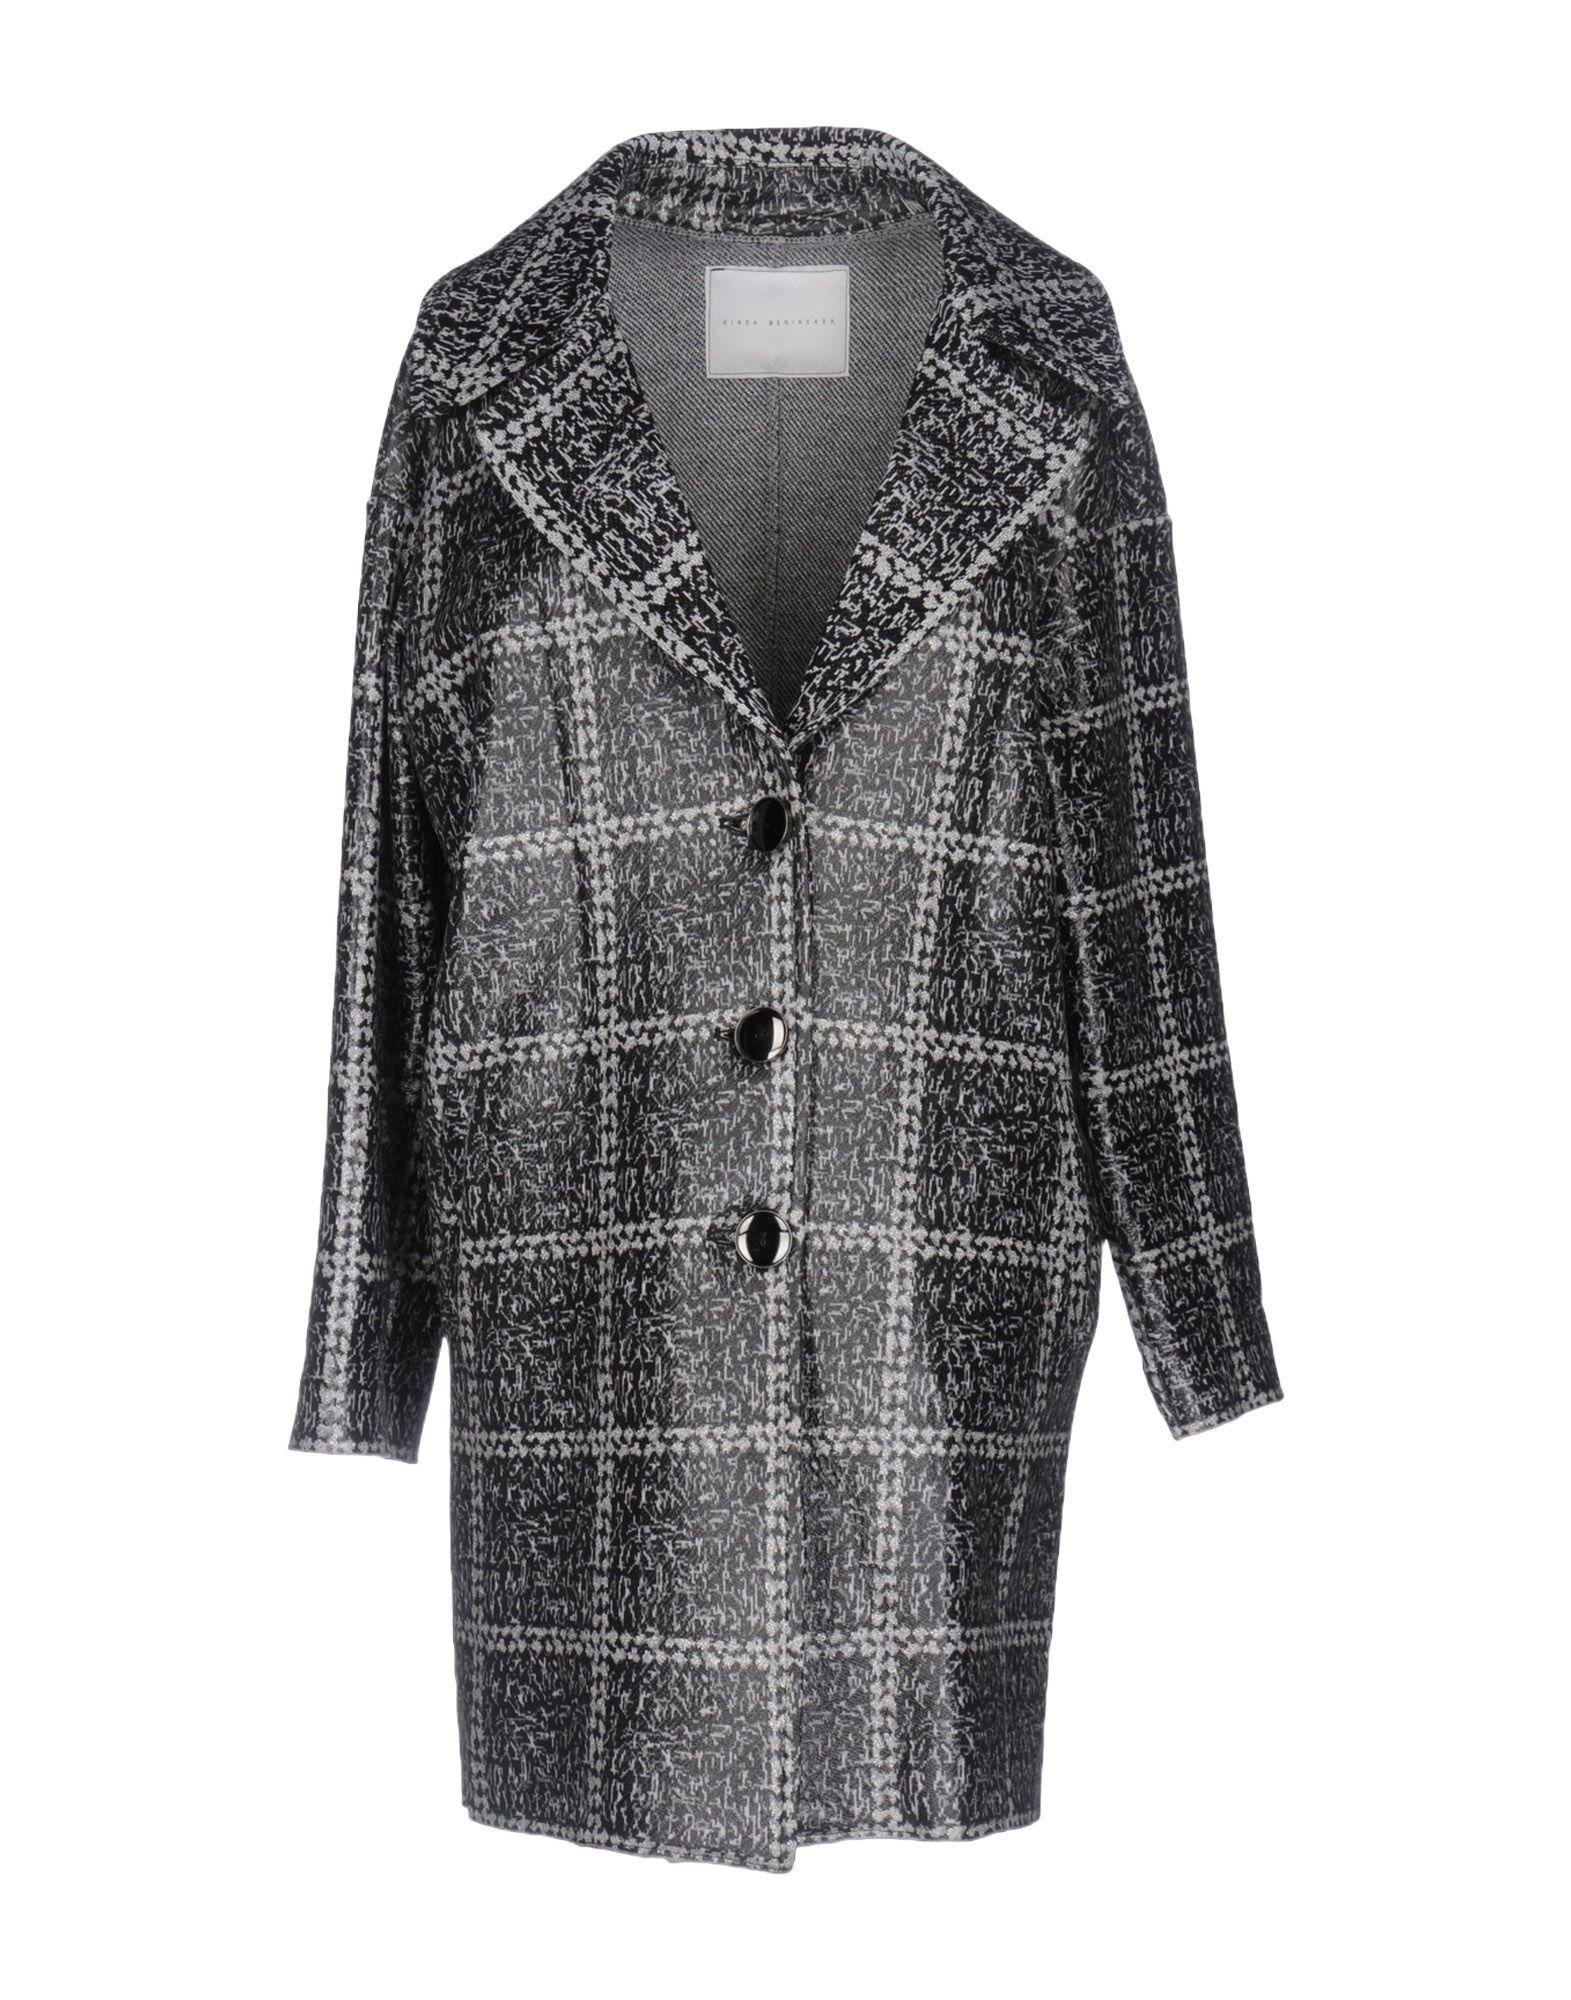 Giada Benincasa Coat In Black